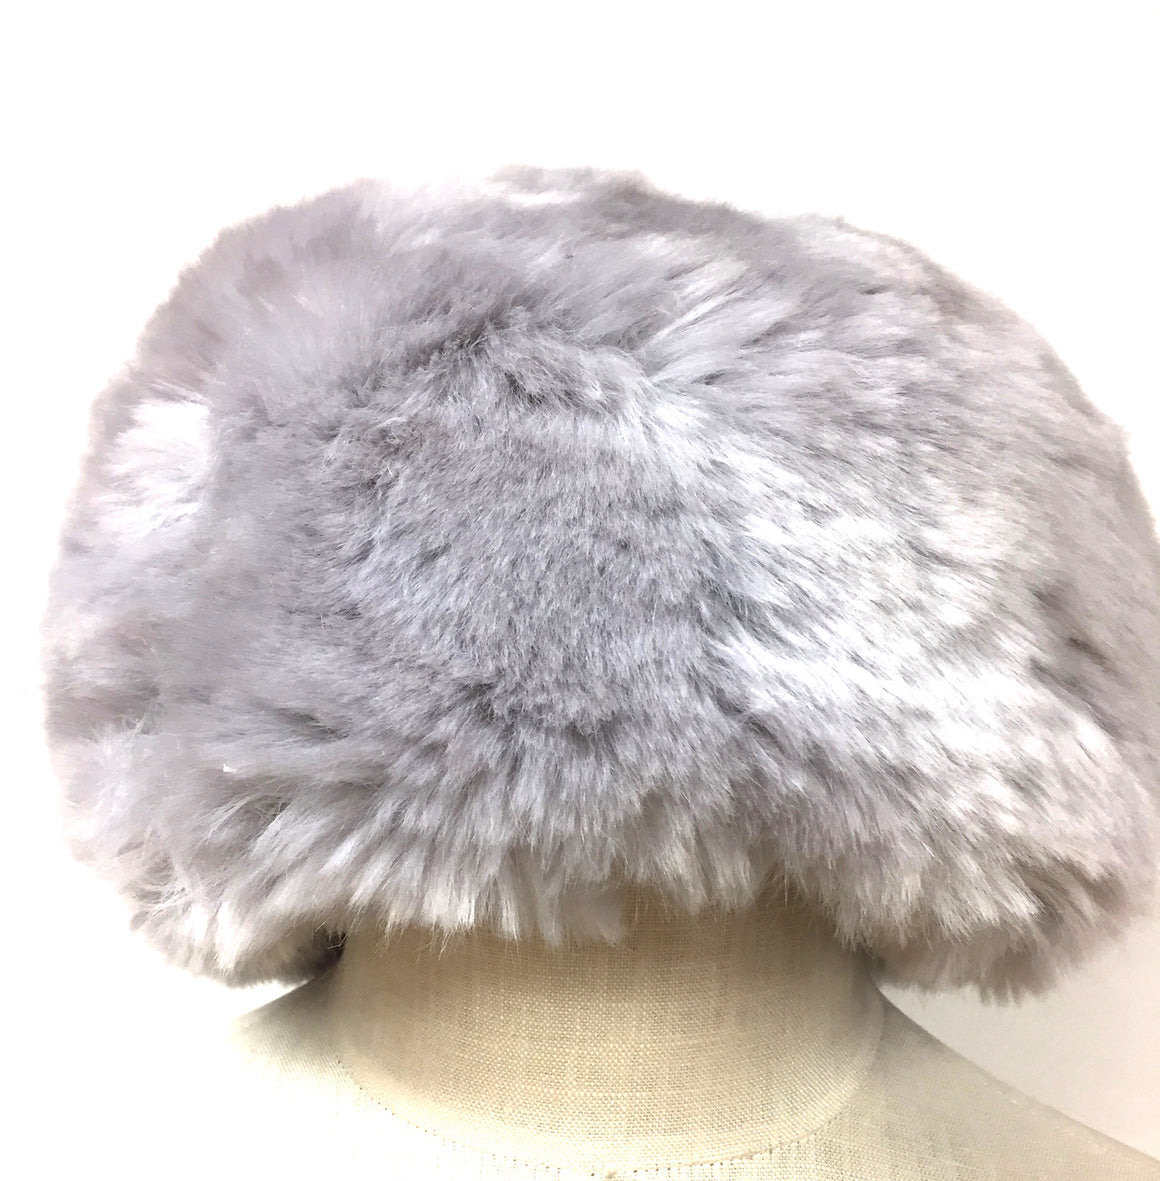 GILLY FORGE - London Silver Gray Faux Fur Hat Size: One Size